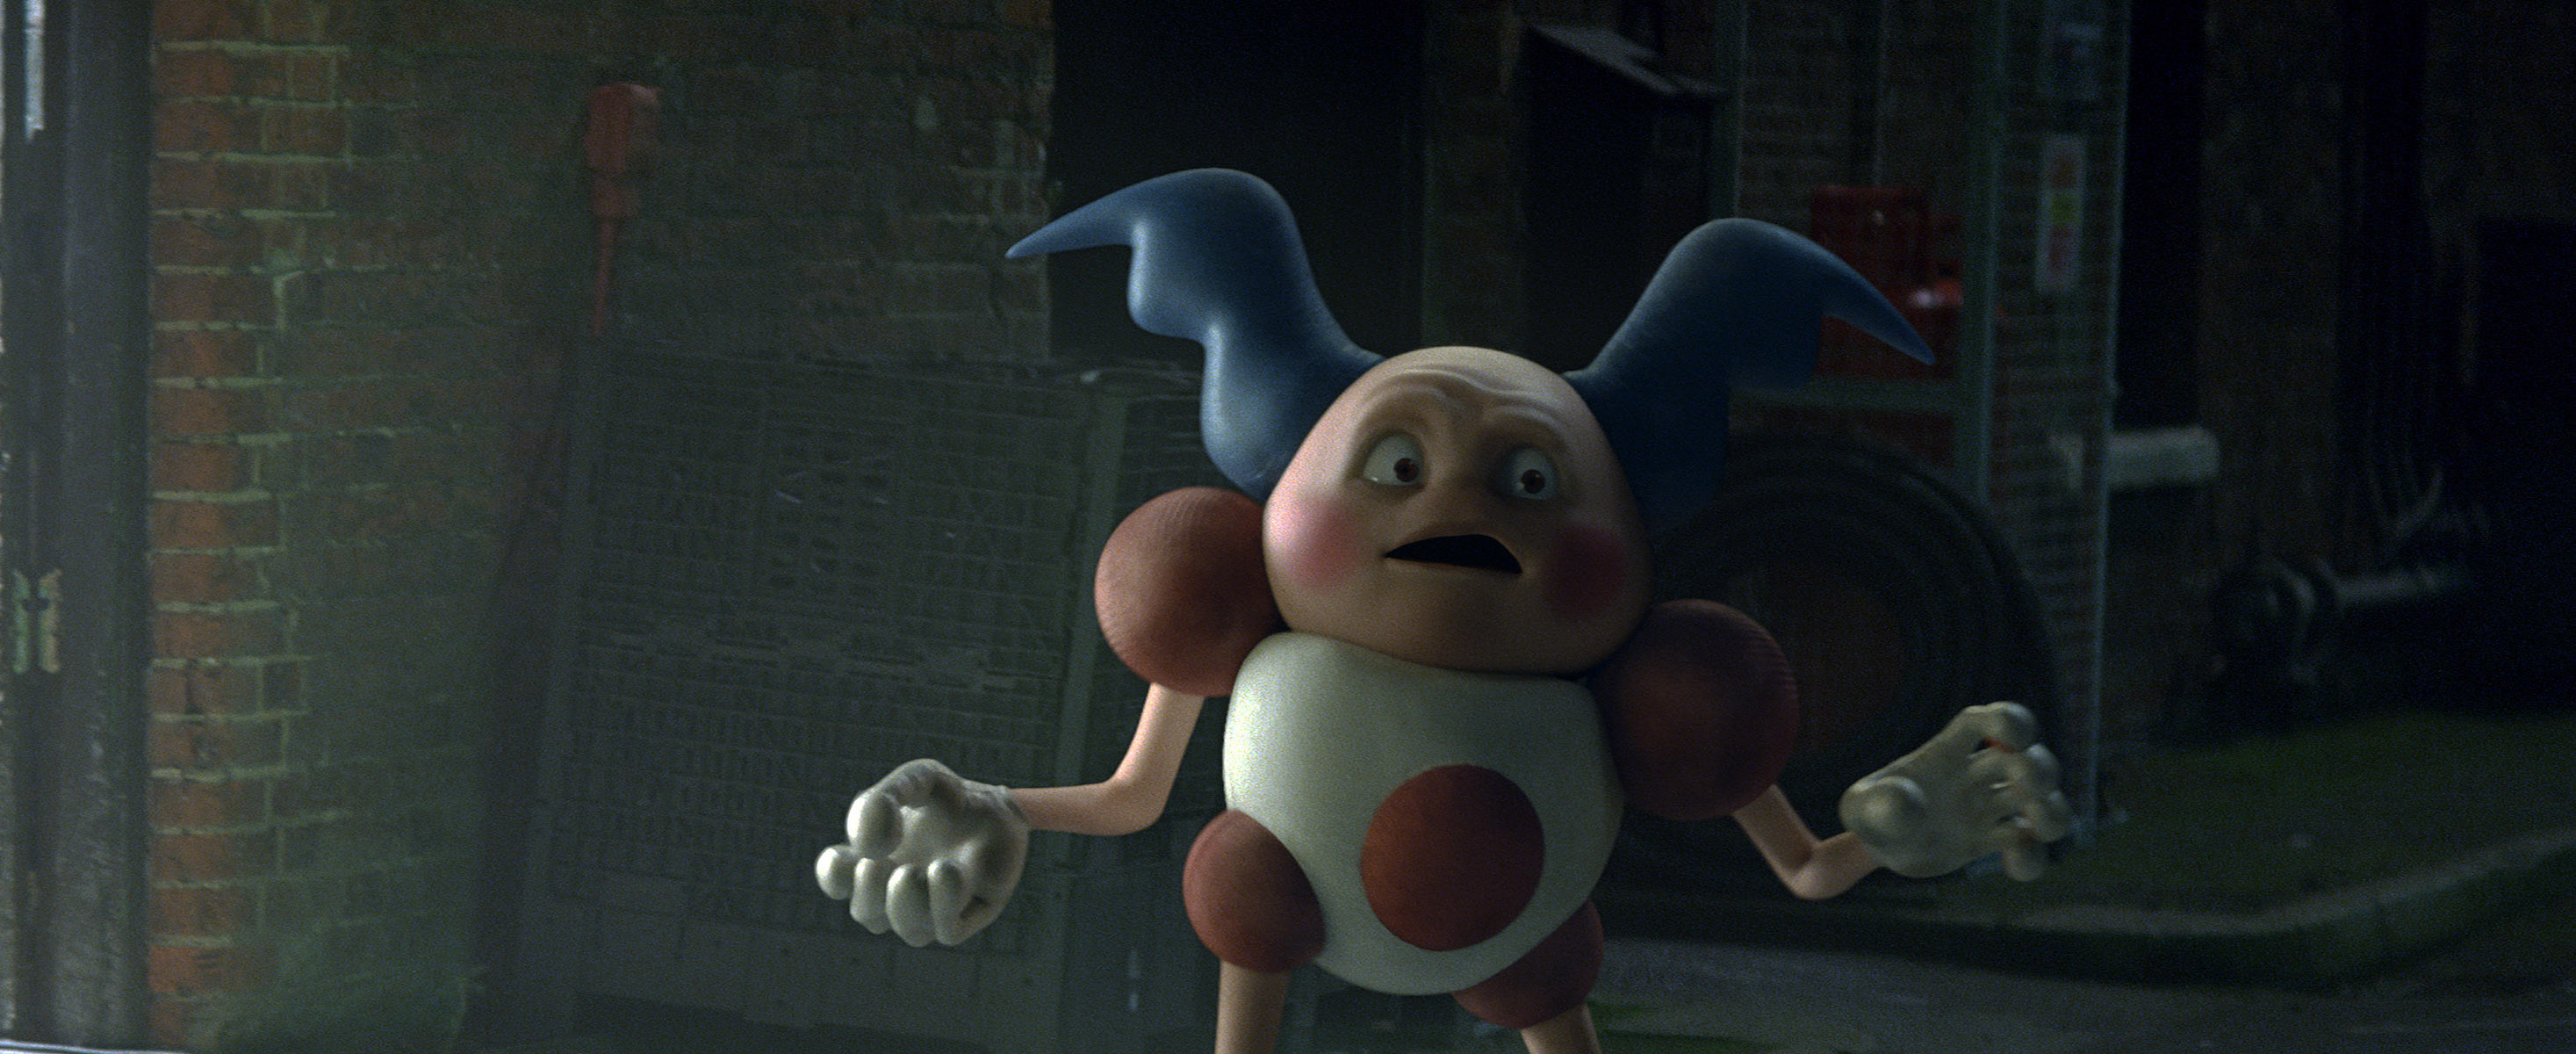 Mr. Mime in  Detective Pikacu.